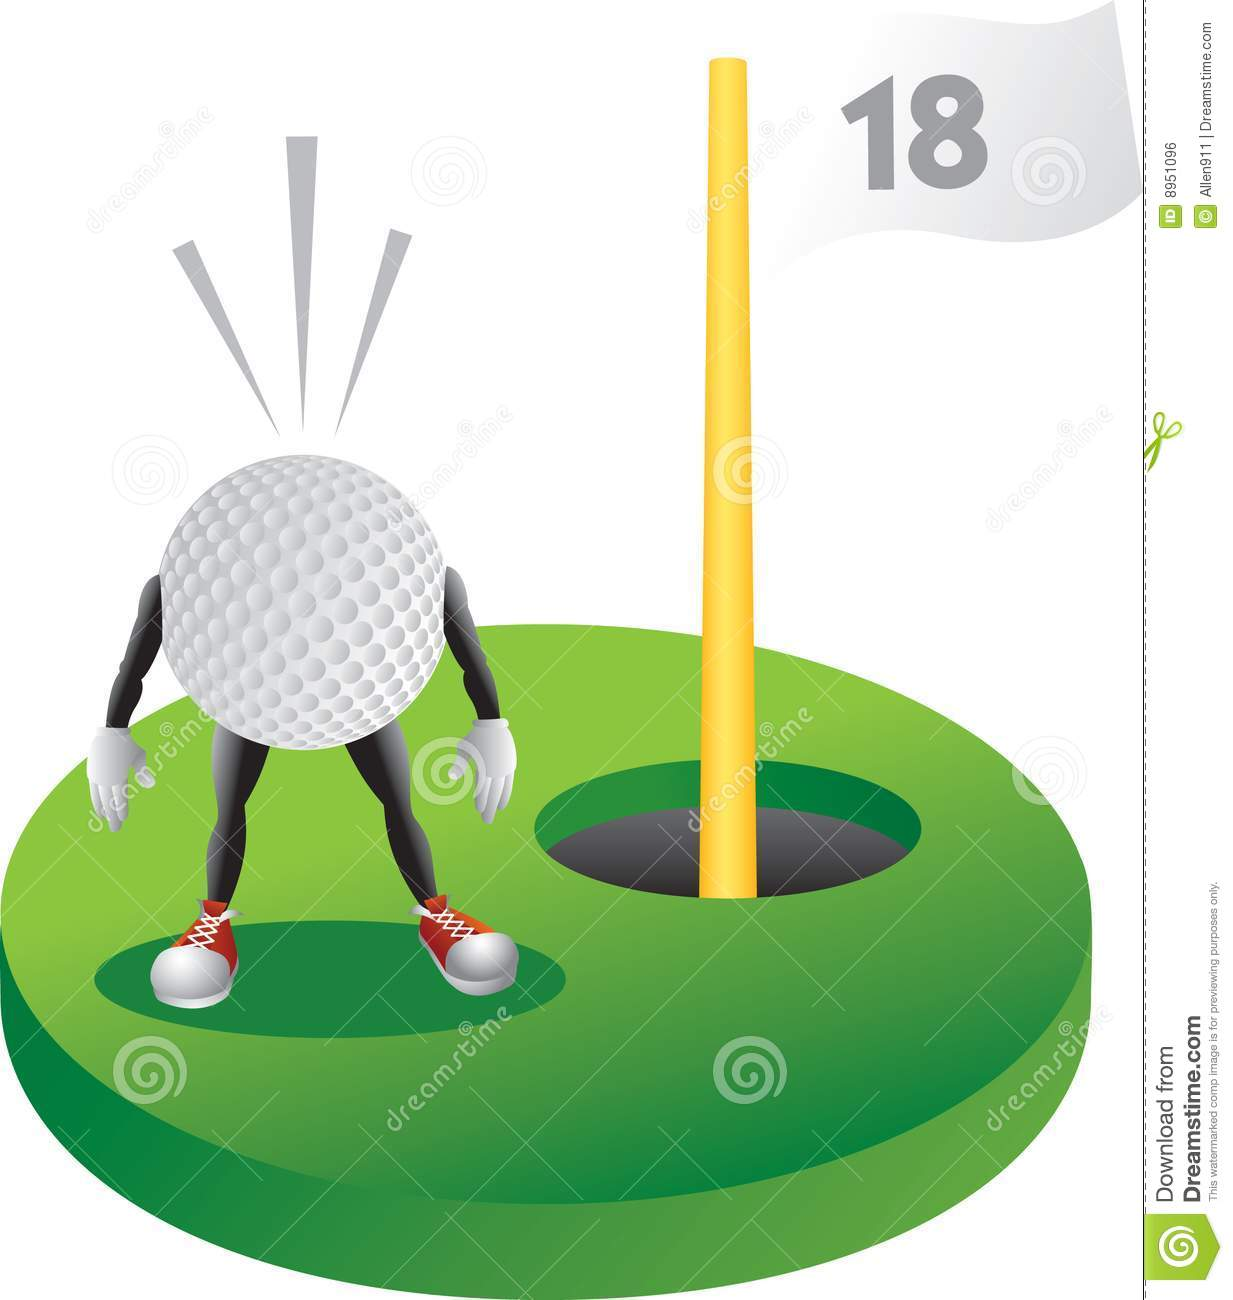 Cartoon Golf Ball At The Last Hole Royalty Free Stock ... Golf Hole Clip Art